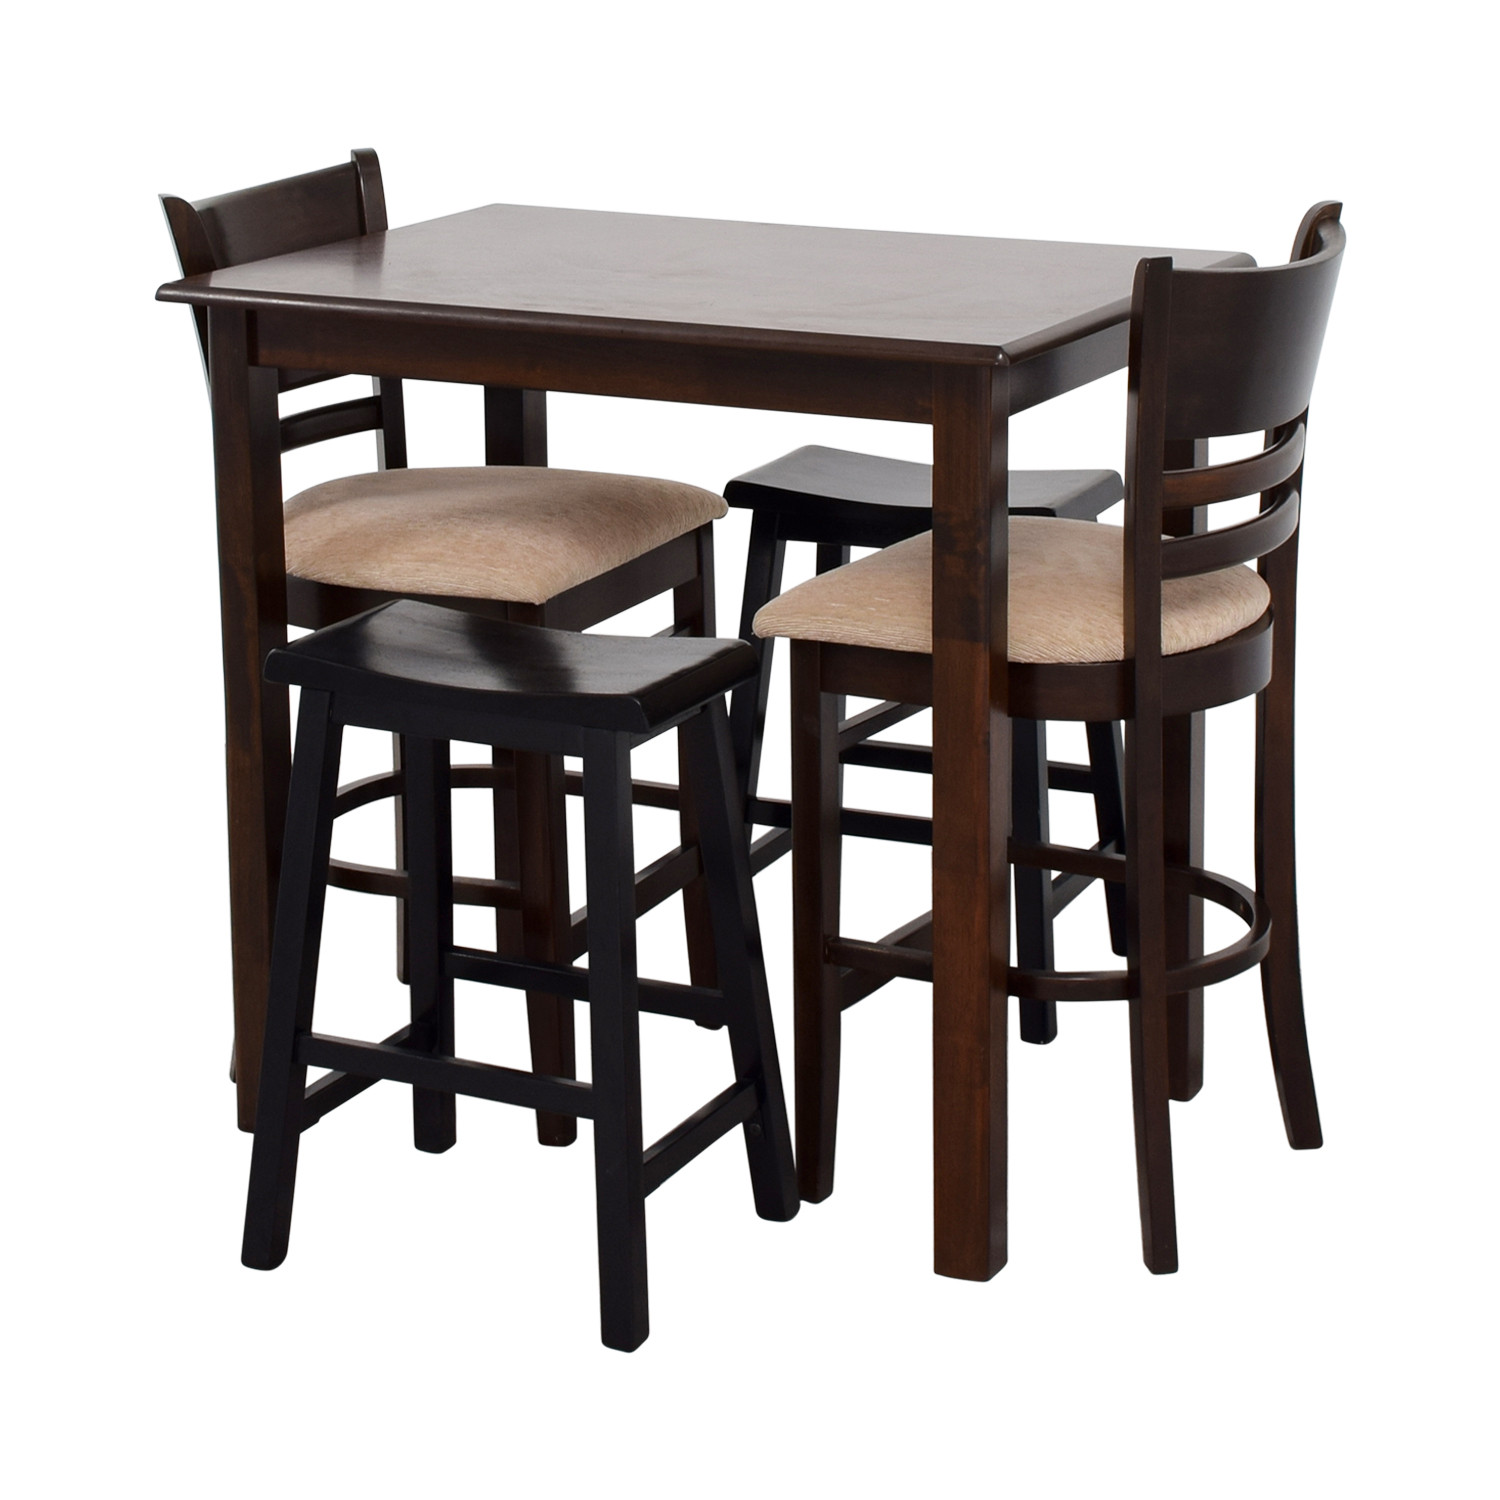 Best ideas about Bar Table And Chairs . Save or Pin OFF Simple Bar Table with Two Chairs and Two Stools Now.